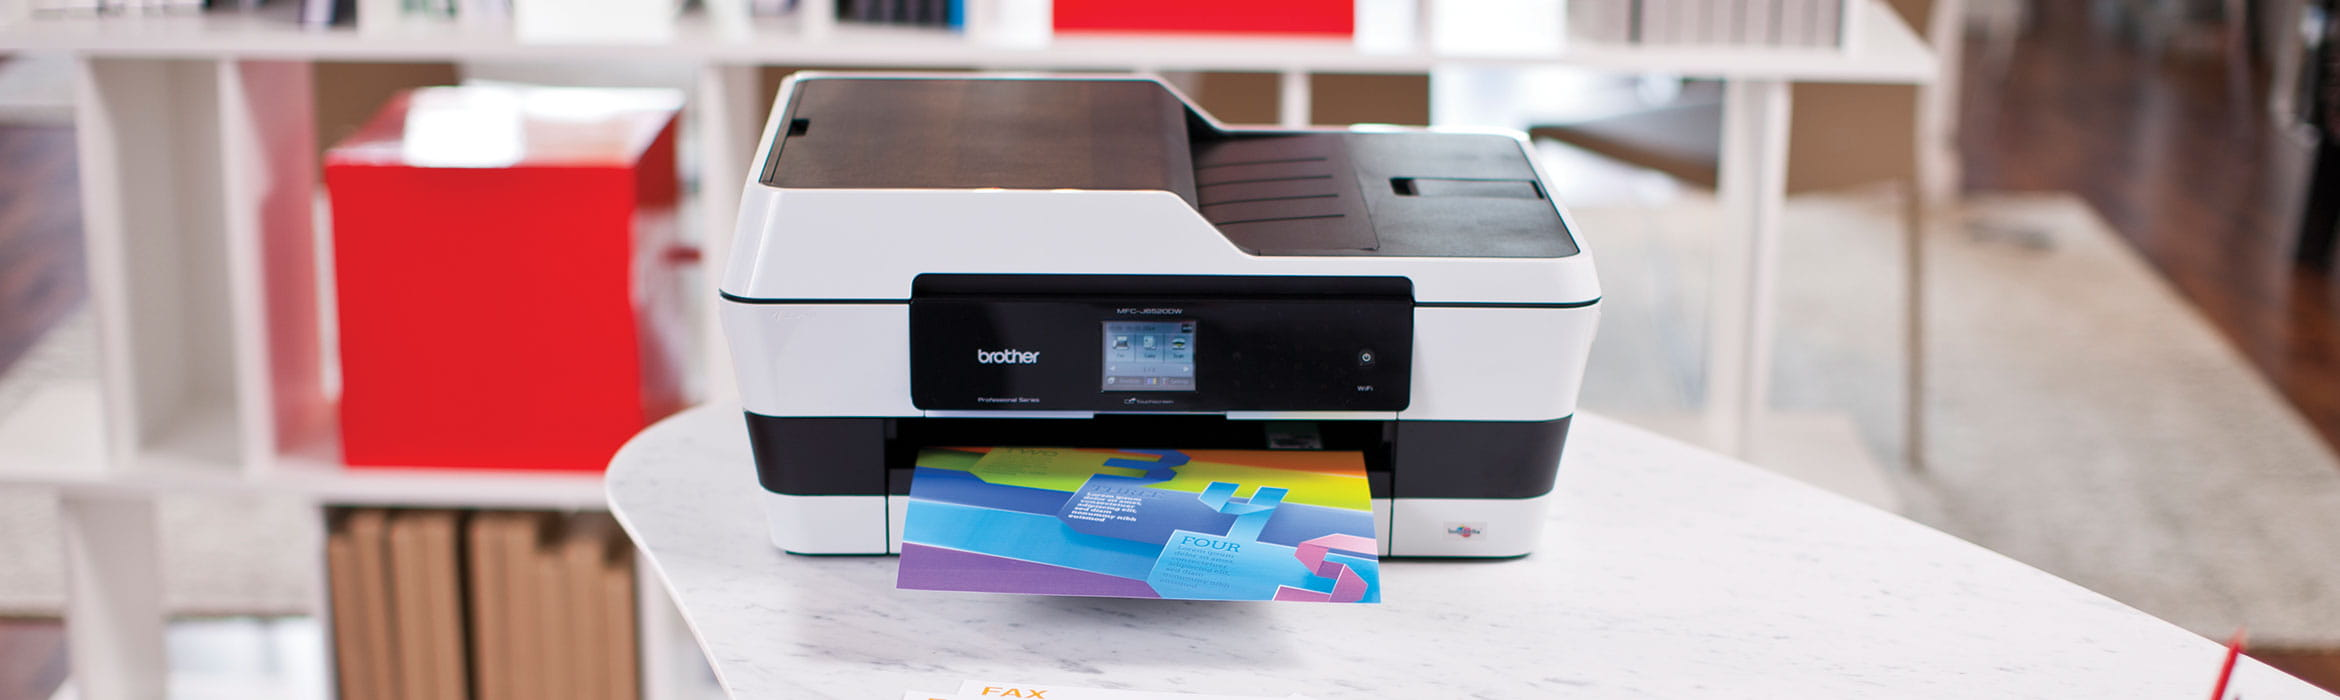 Brother A3 inkjet colour printer on desk